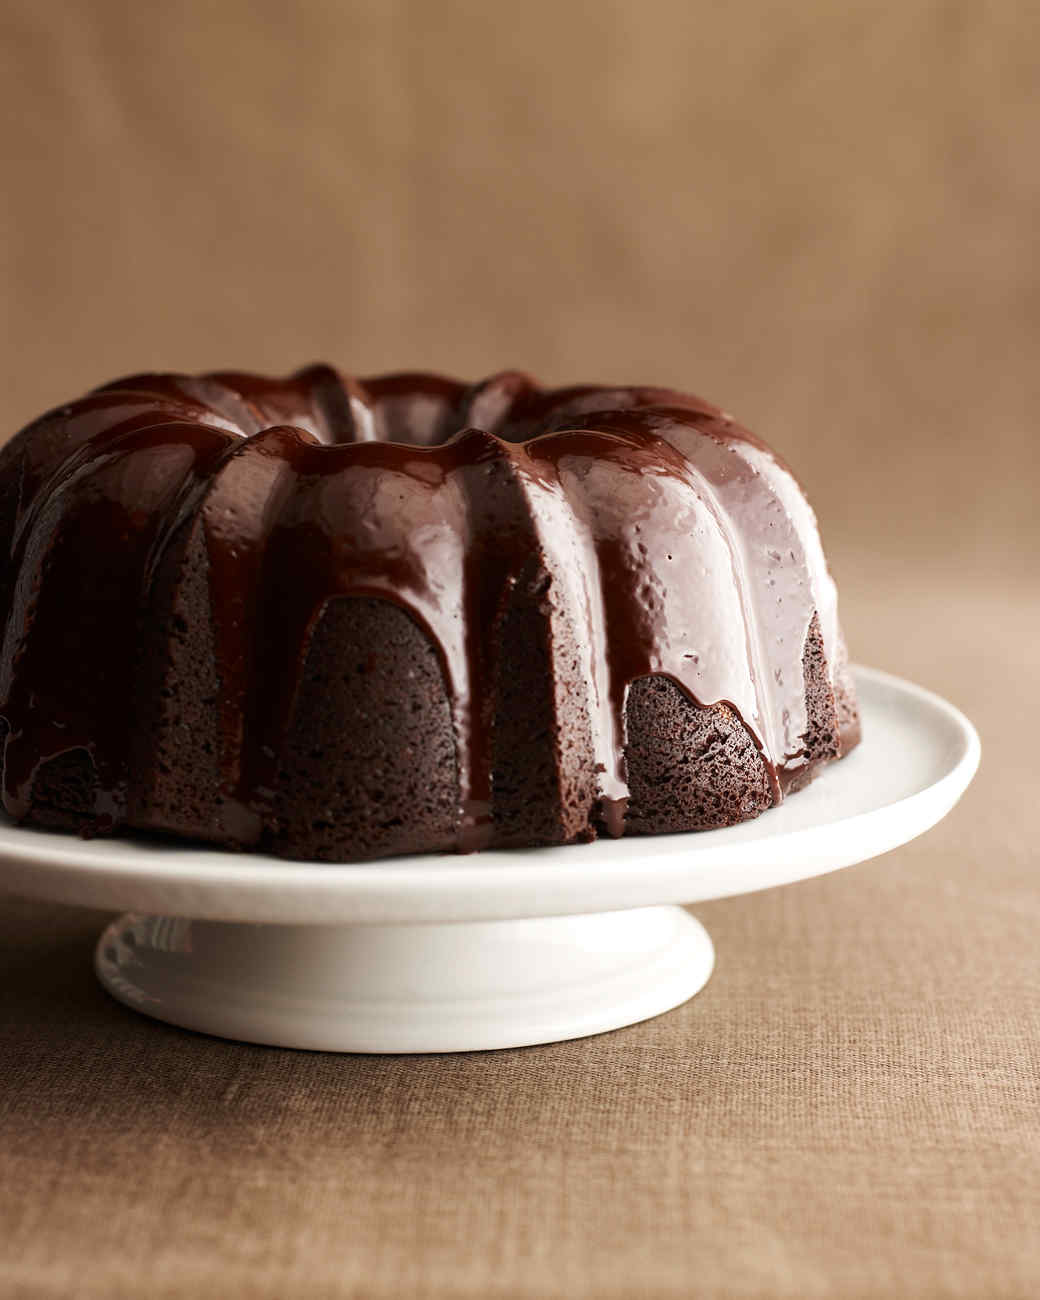 Chocolate Bundt Cake Decorating Ideas : Devils Bundt Cake